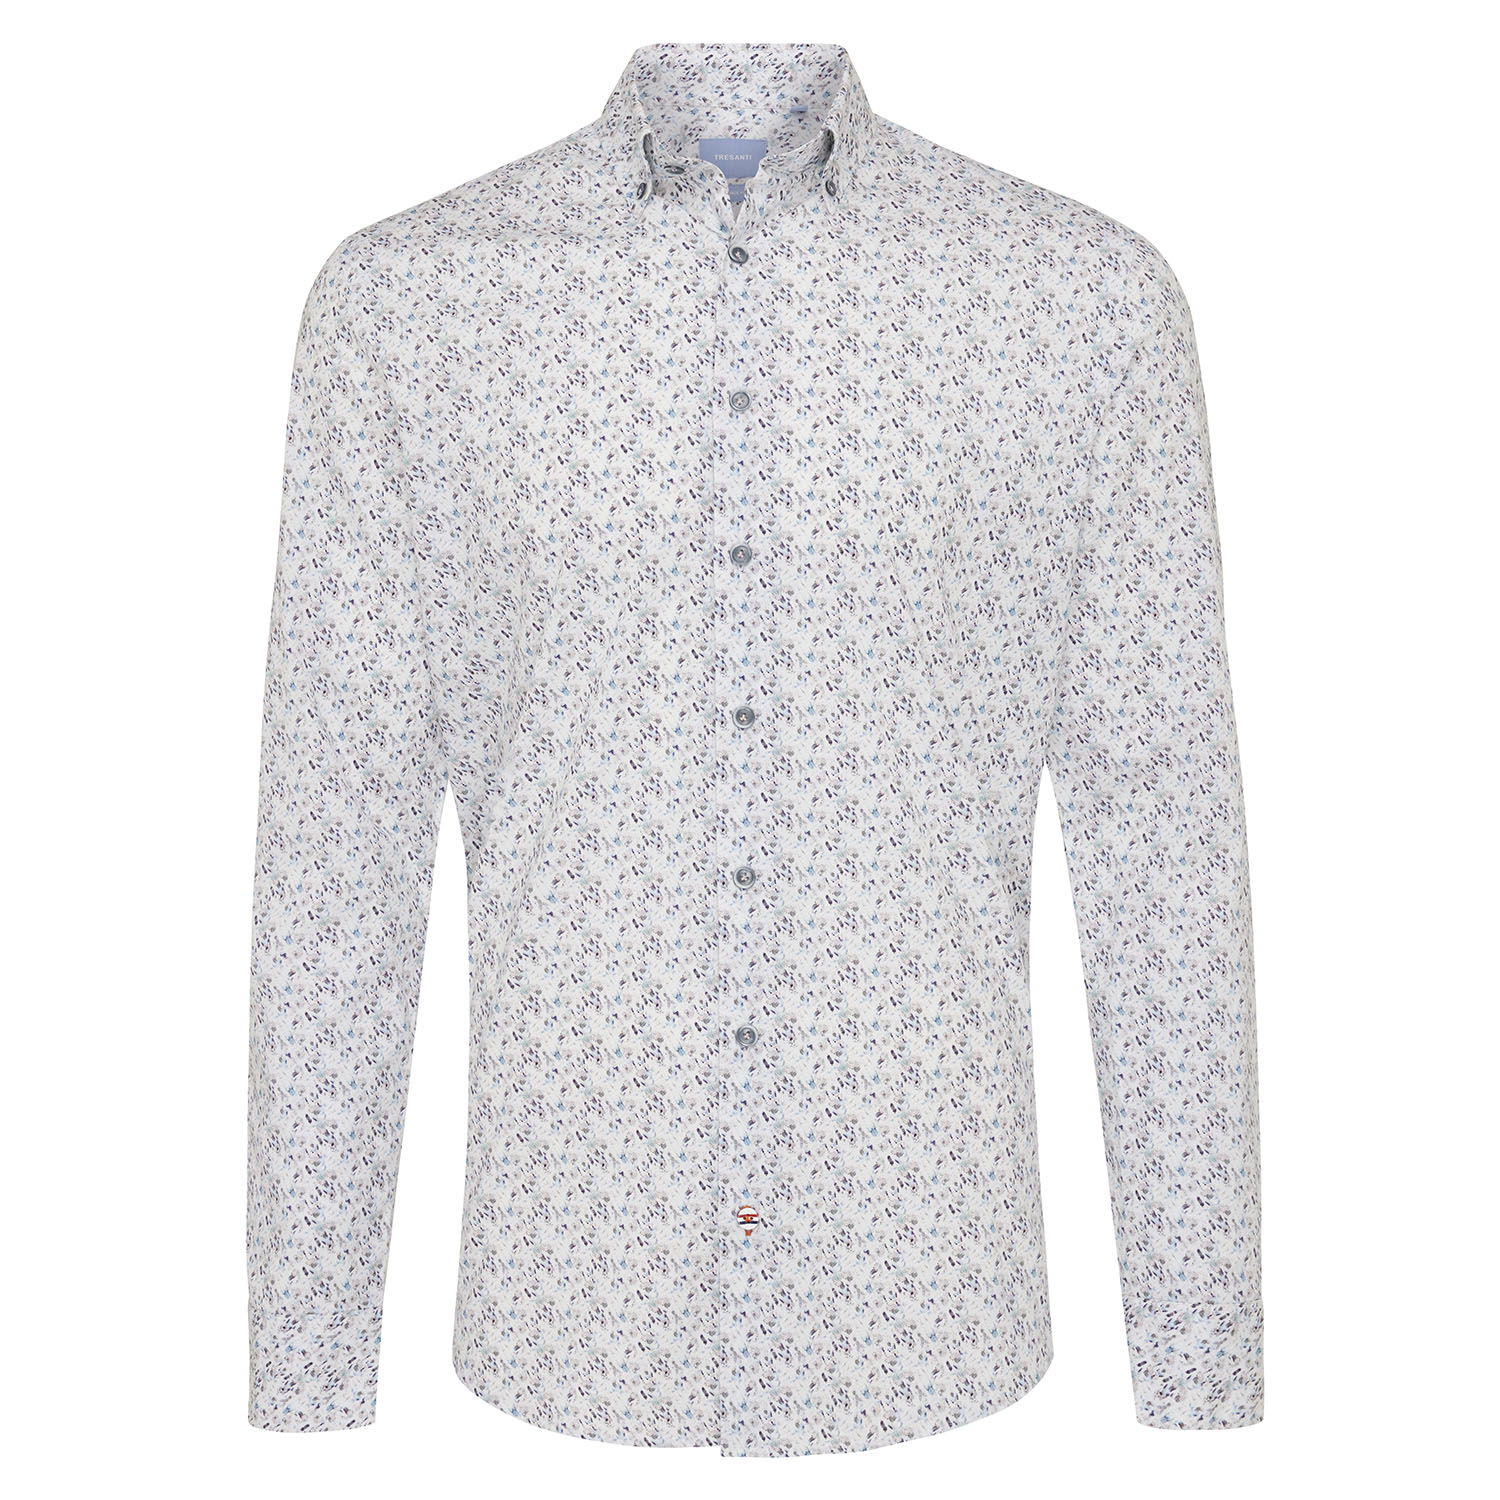 Marein | Shirt multicolour fantasy print - organic cotton